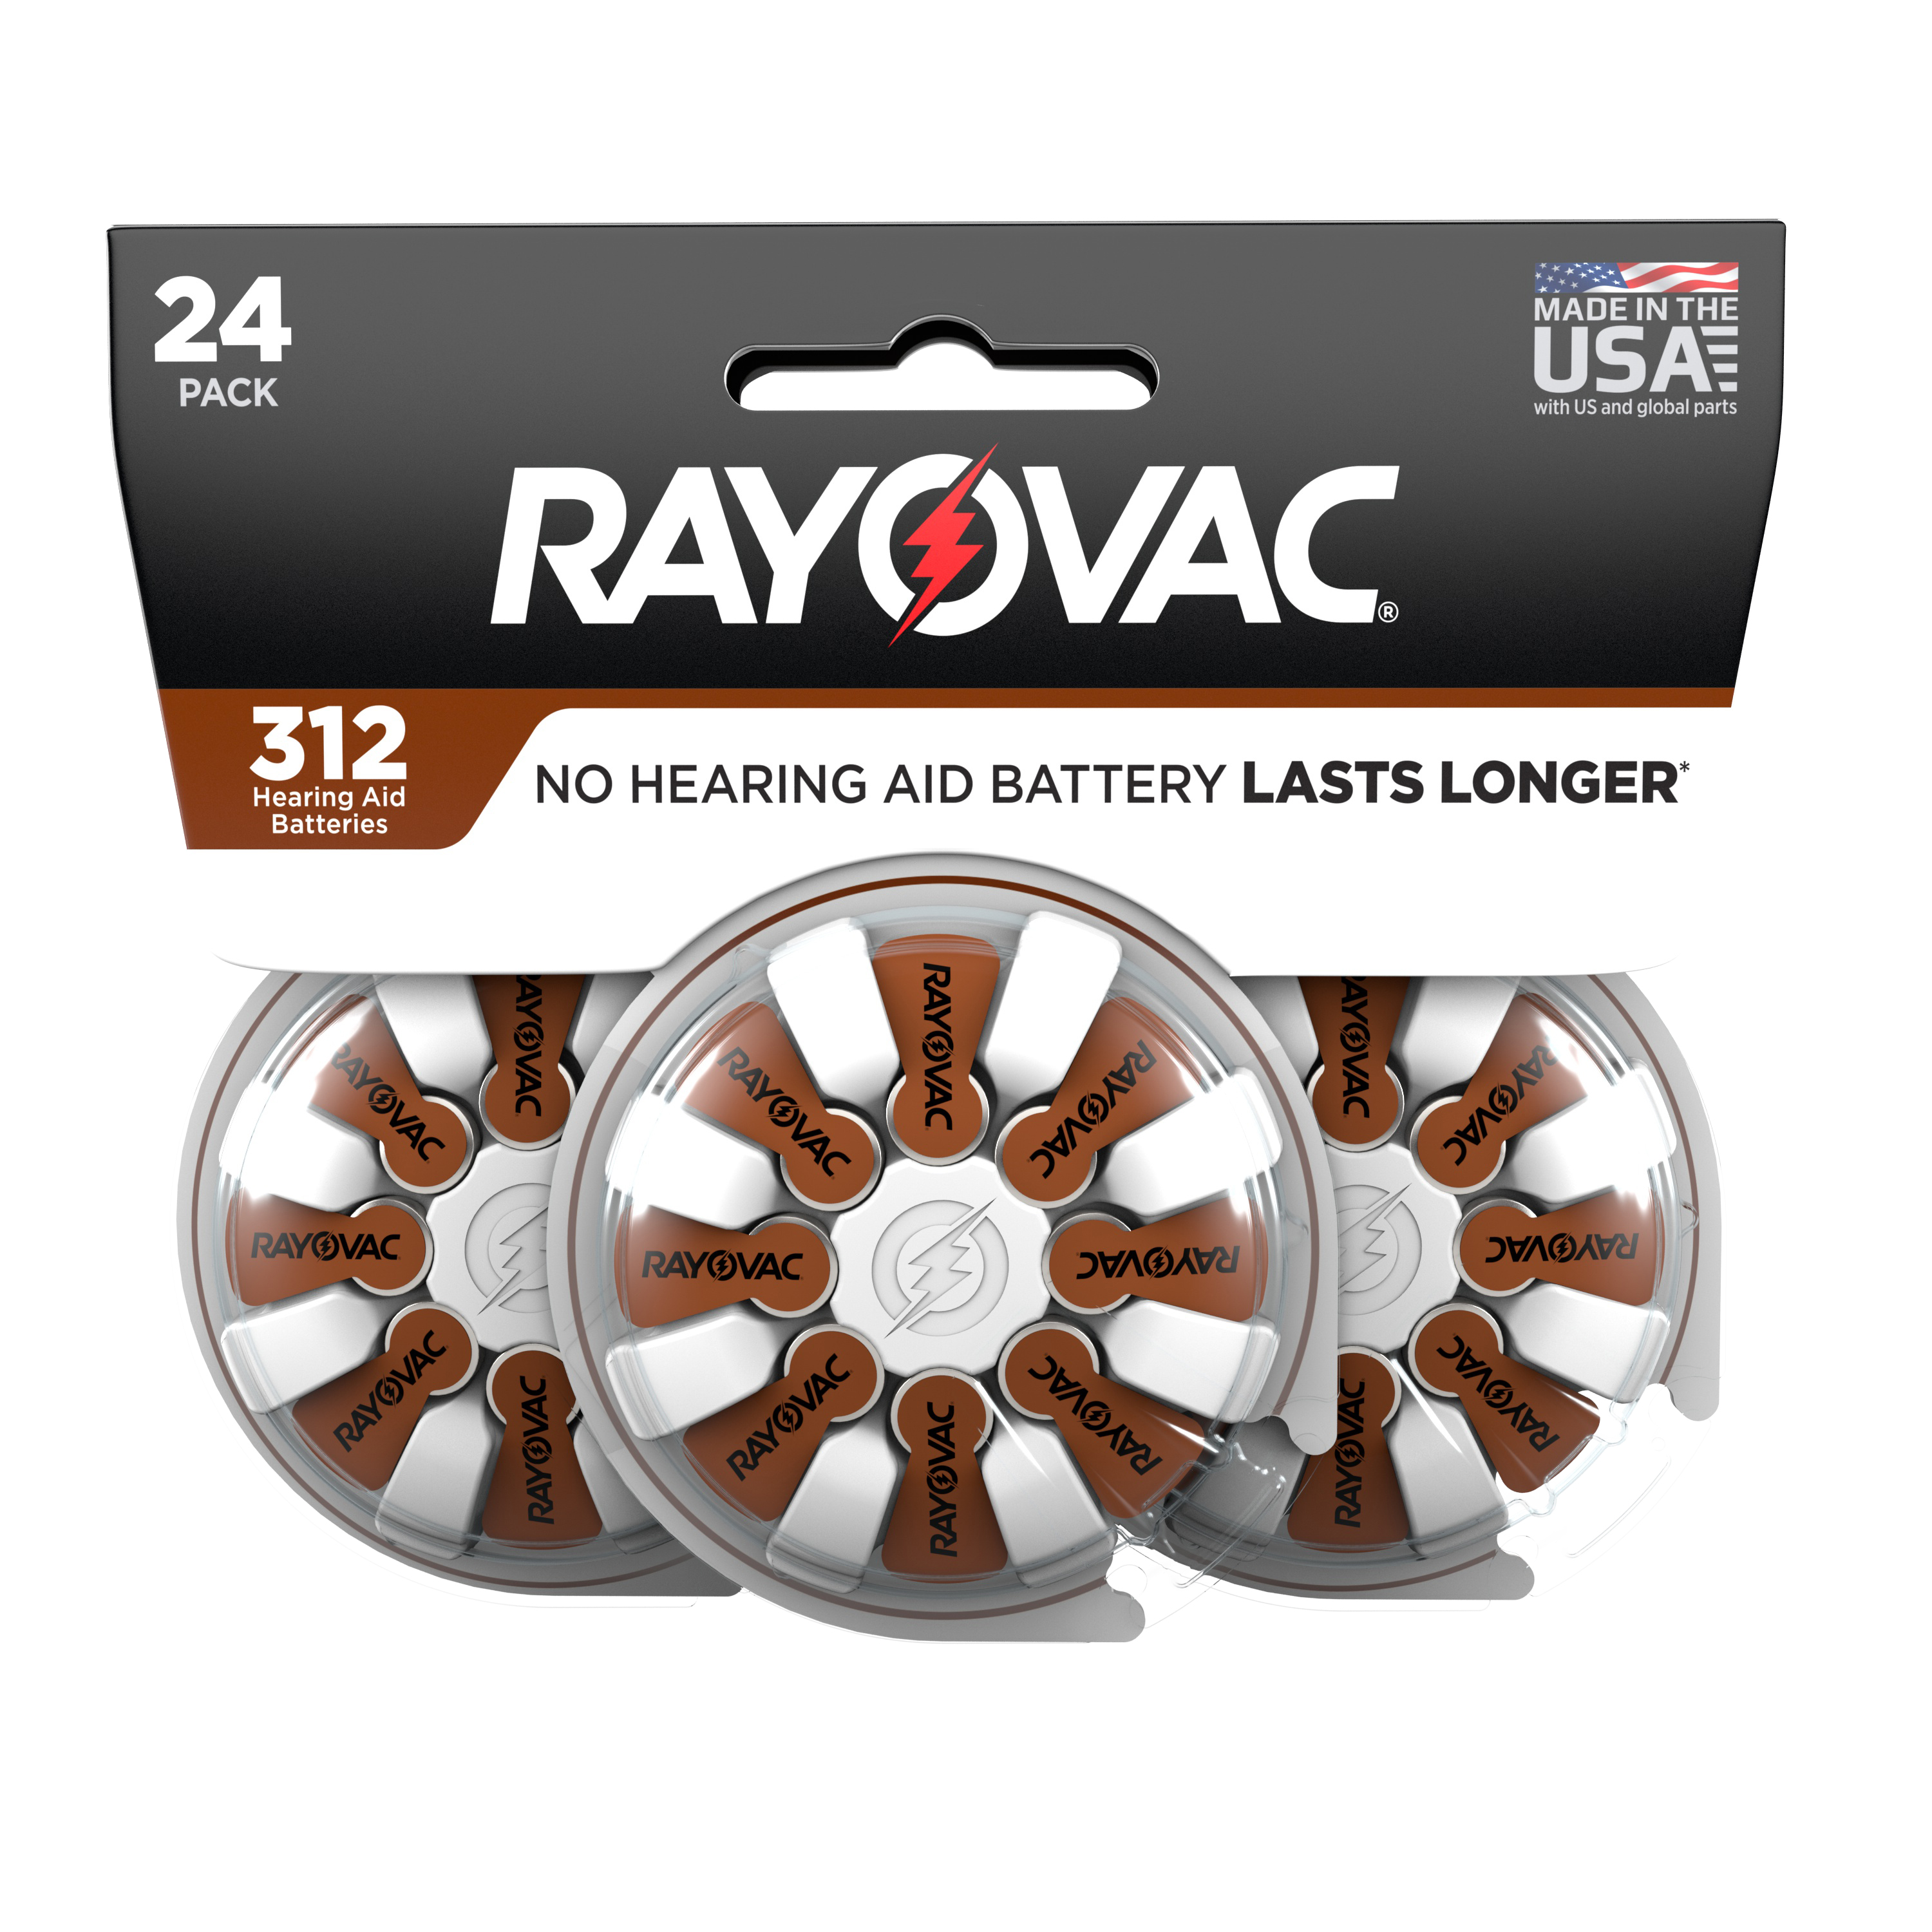 Rayovac Size 312 Hearing Aid Batteries, 24-Pack 312-24